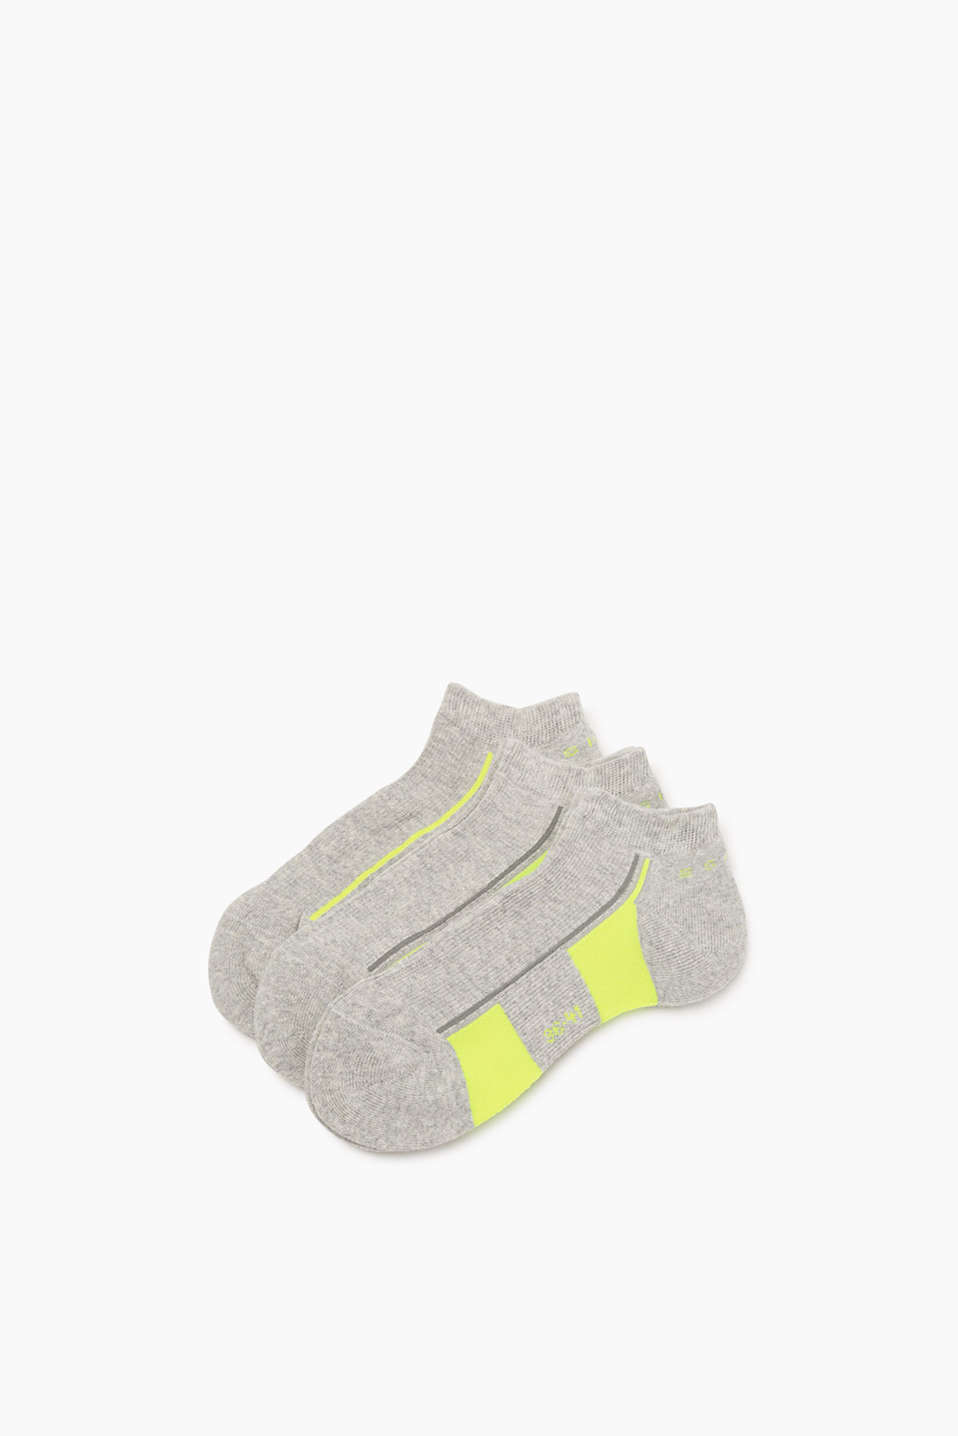 Trainer socks with eye-catching neon details, in a soft cotton blend